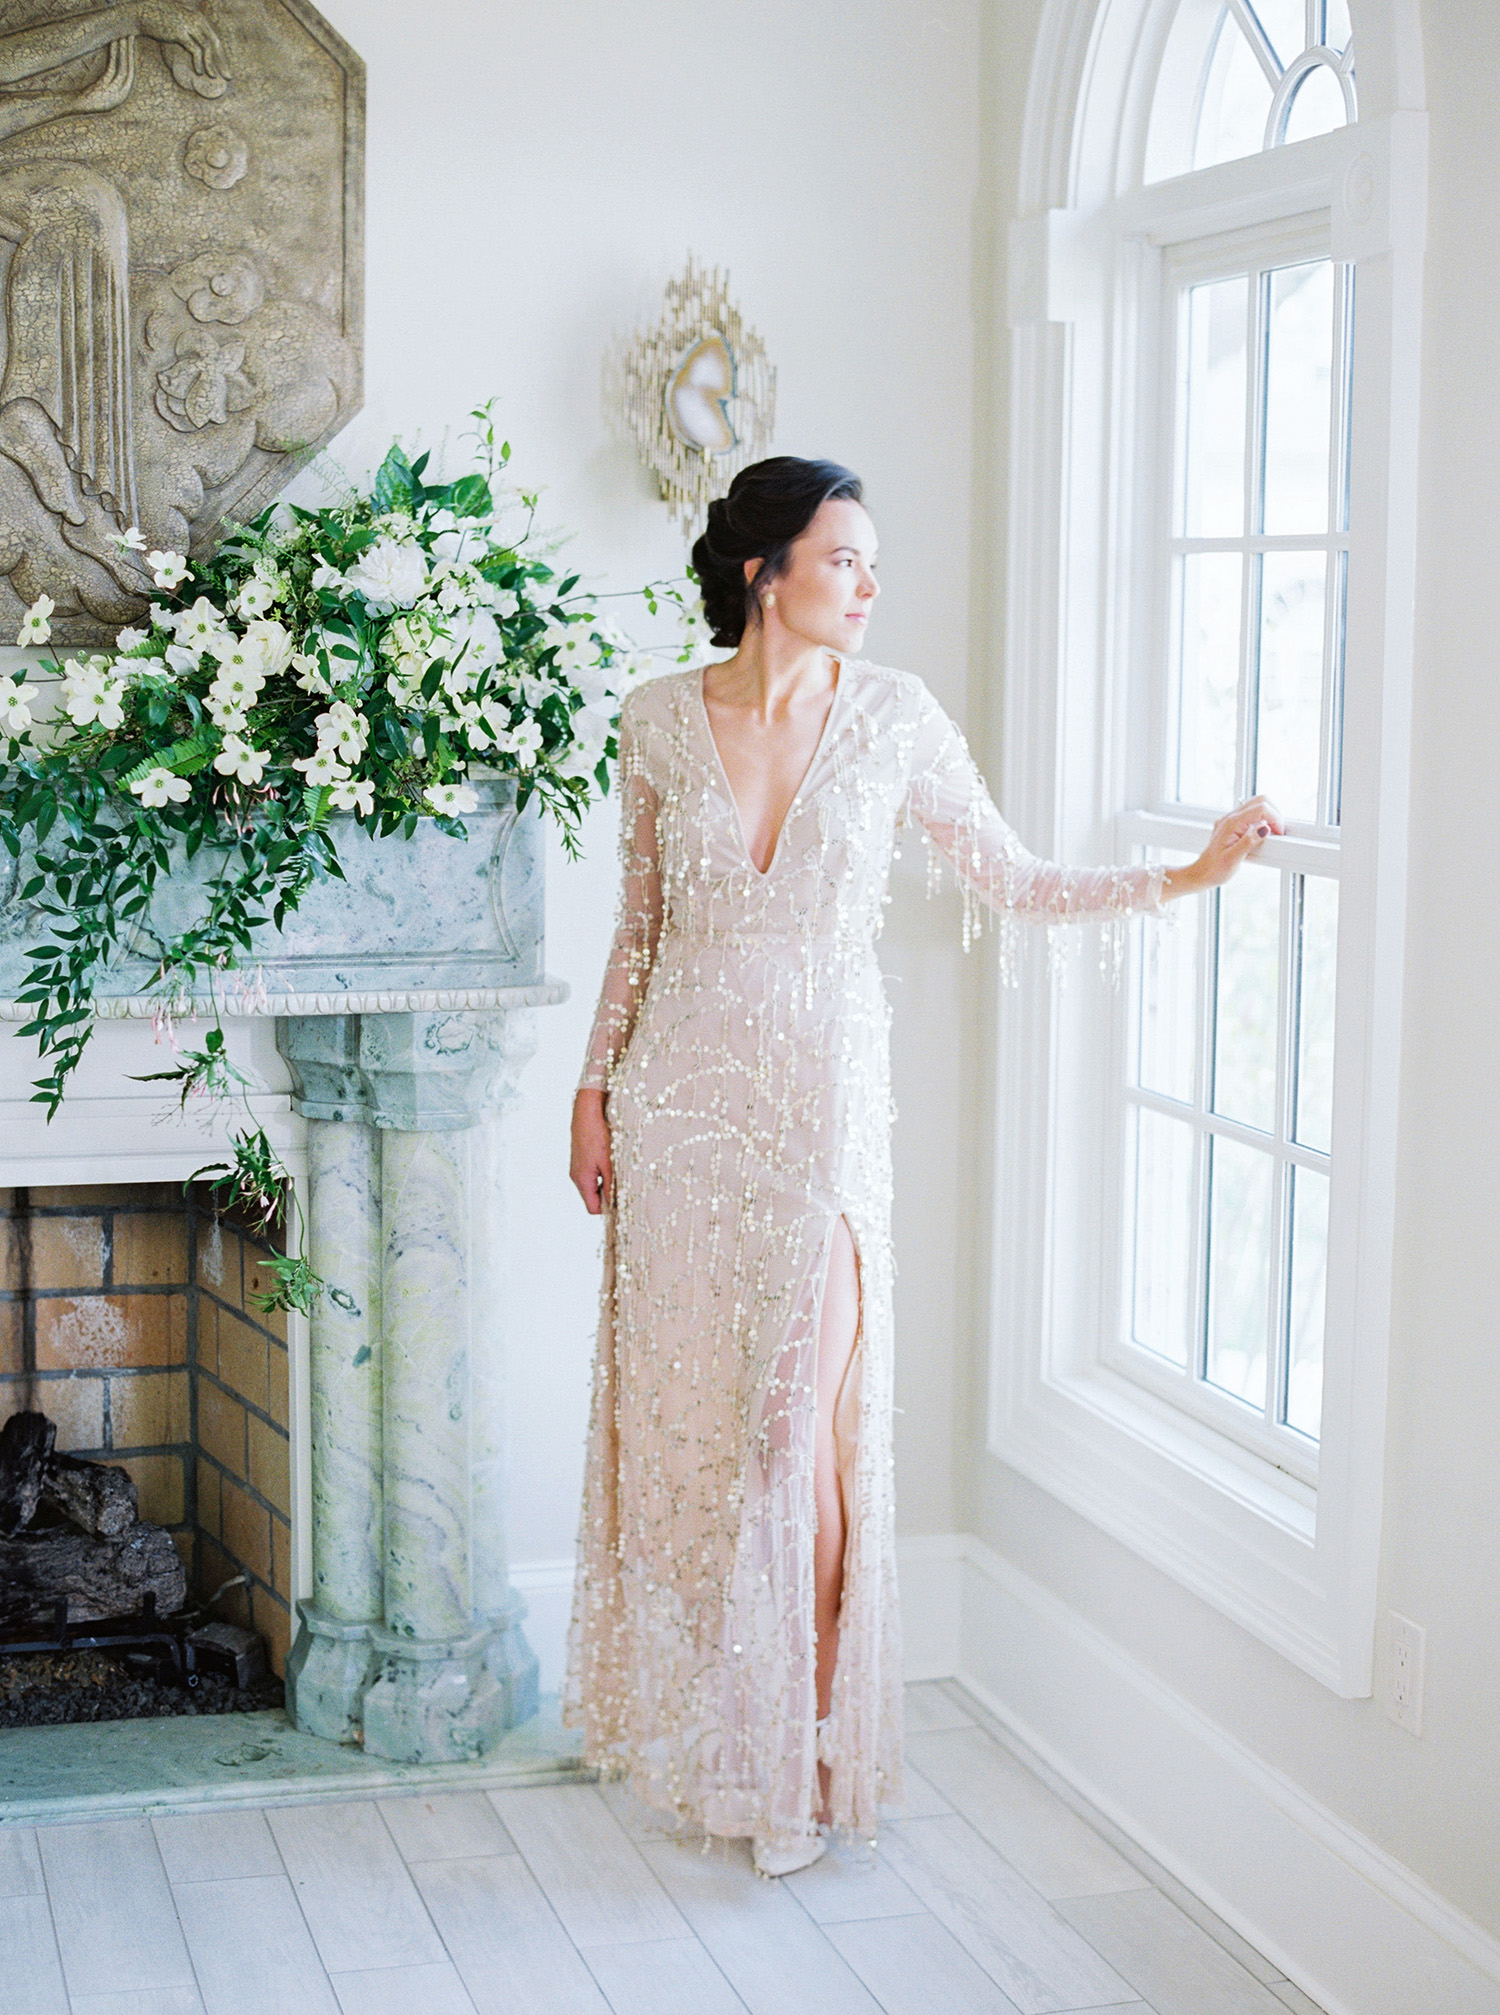 evan dustin vow renewal bride dress